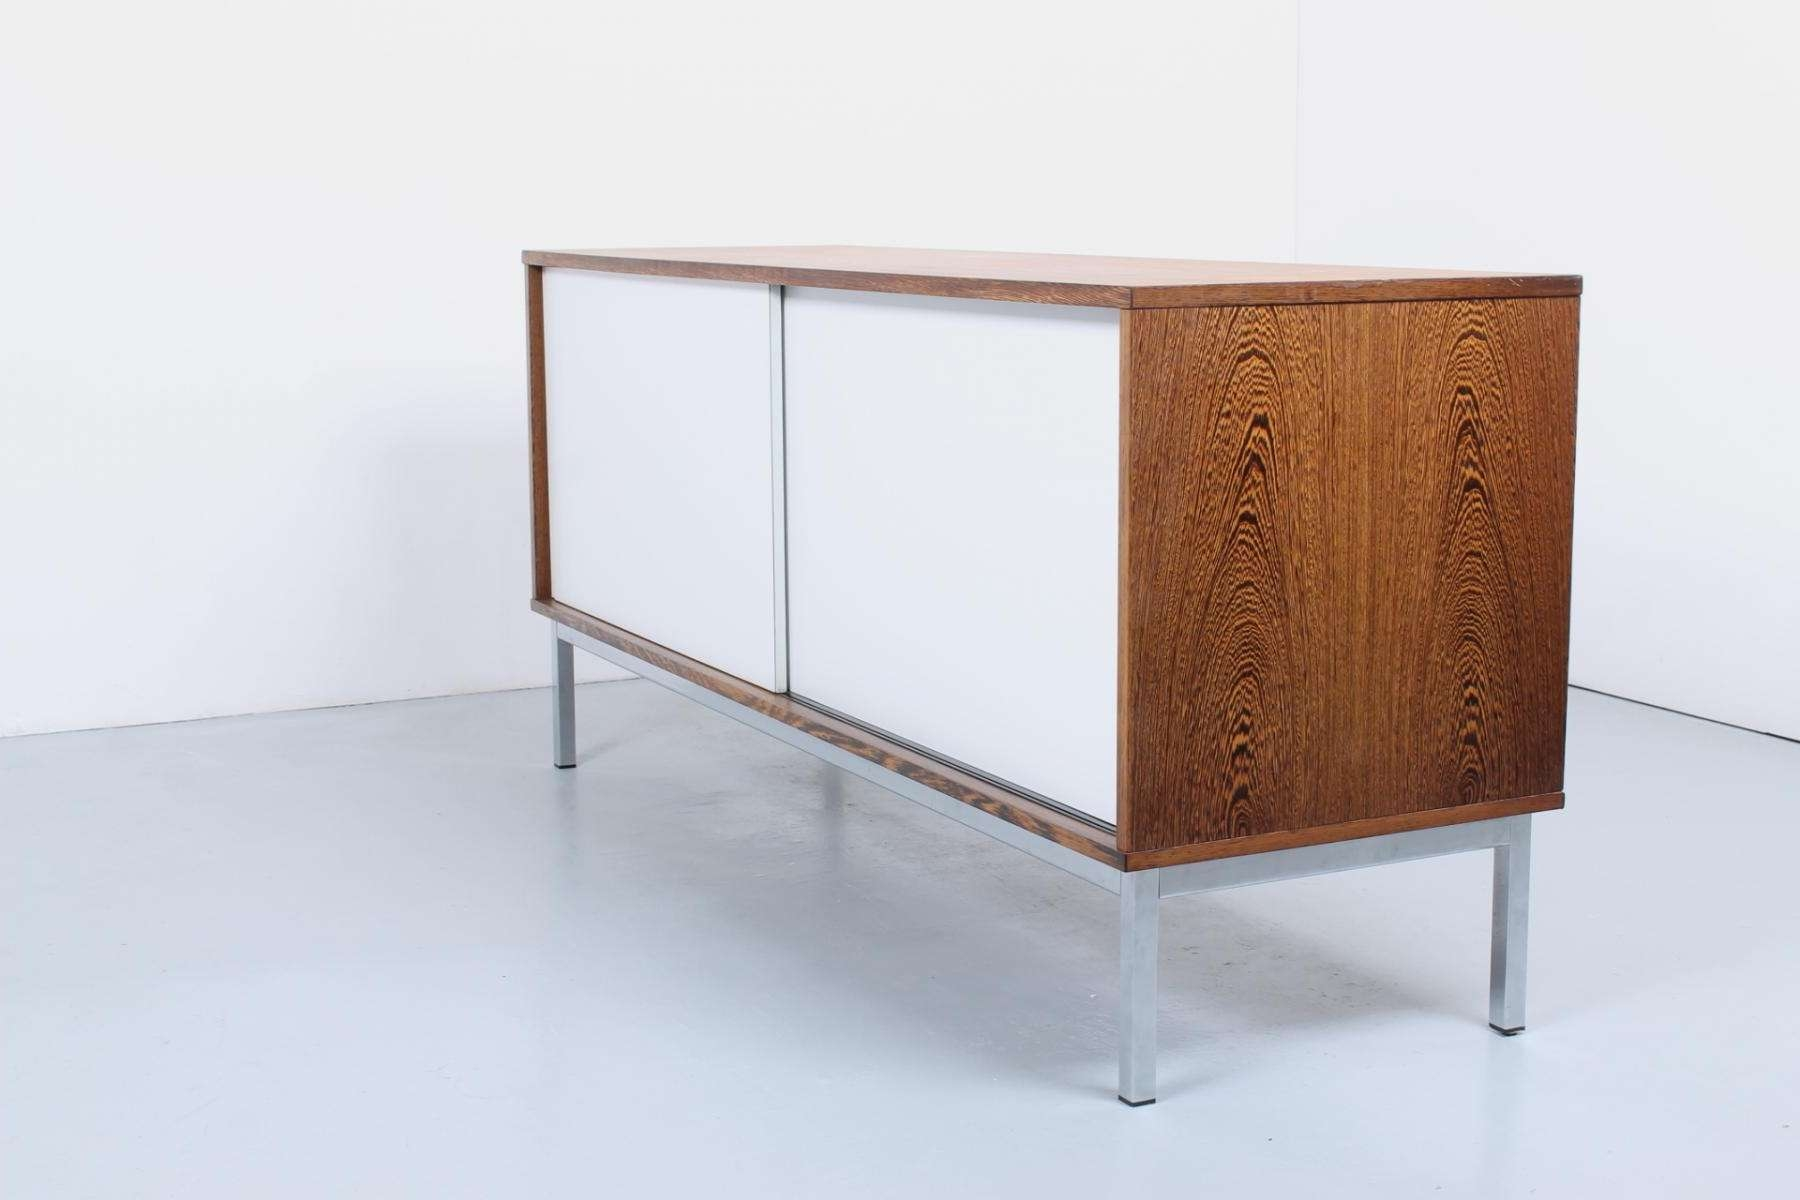 Vintage Kw 87 Sideboard In Wenge Veneer And White Formica Pertaining To Wenge Sideboards (View 6 of 20)